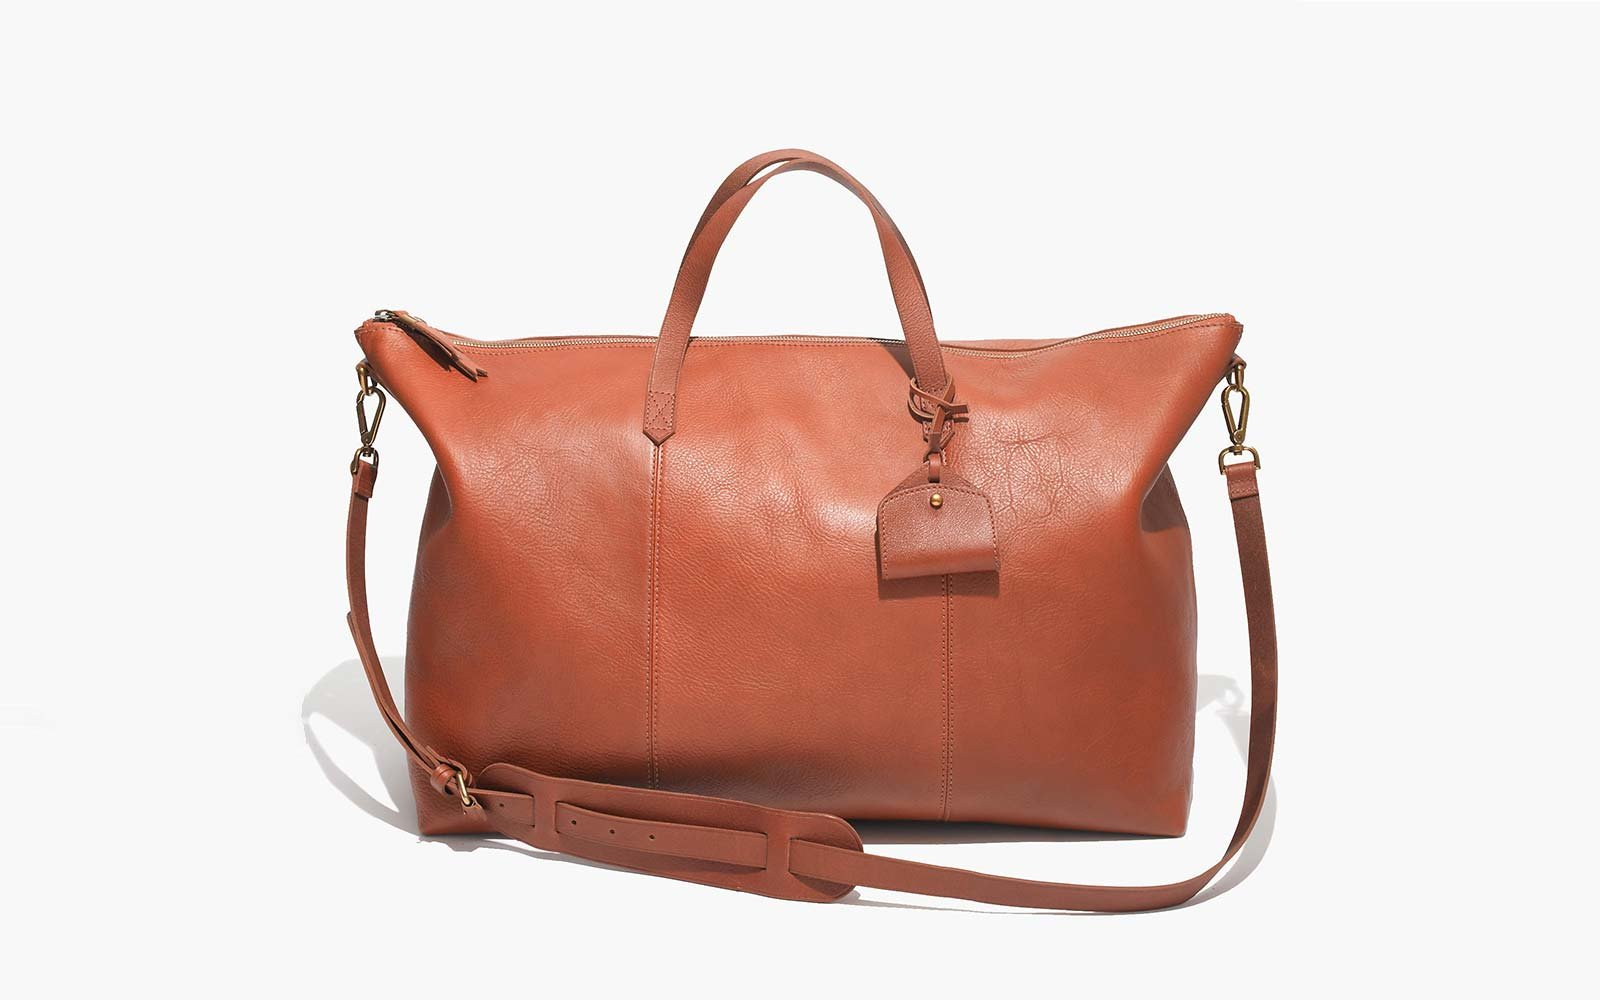 Madewell leather bag